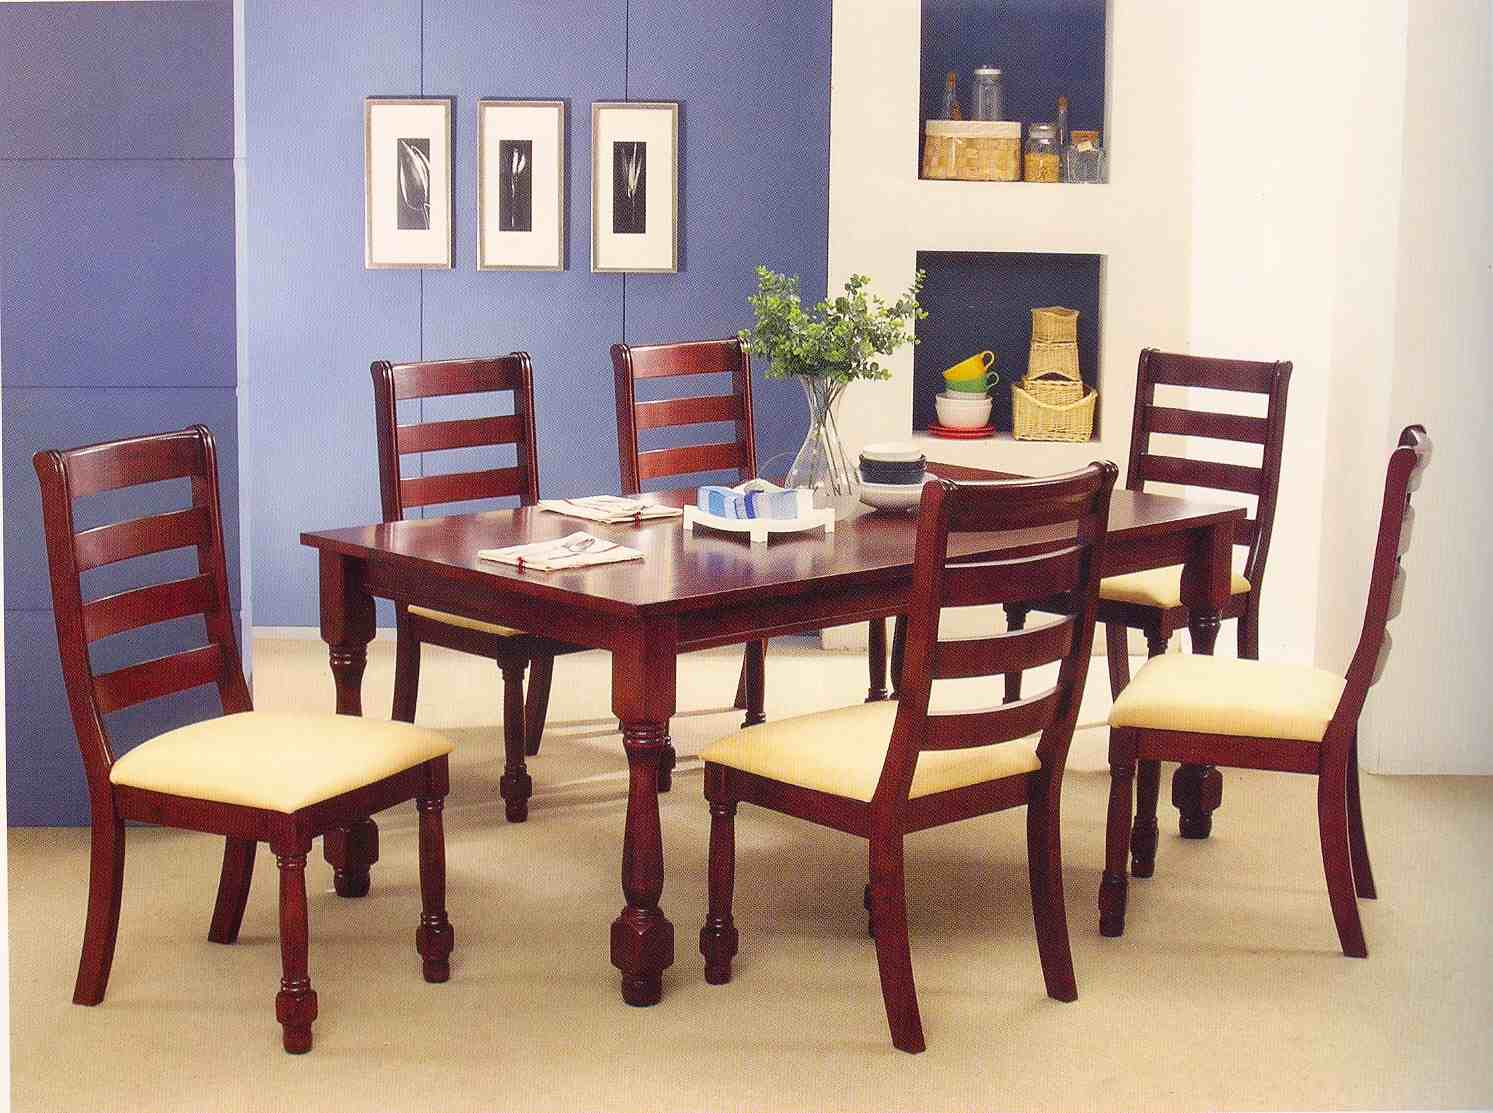 Dining room set for even more tastier meals home for Dining room furniture set